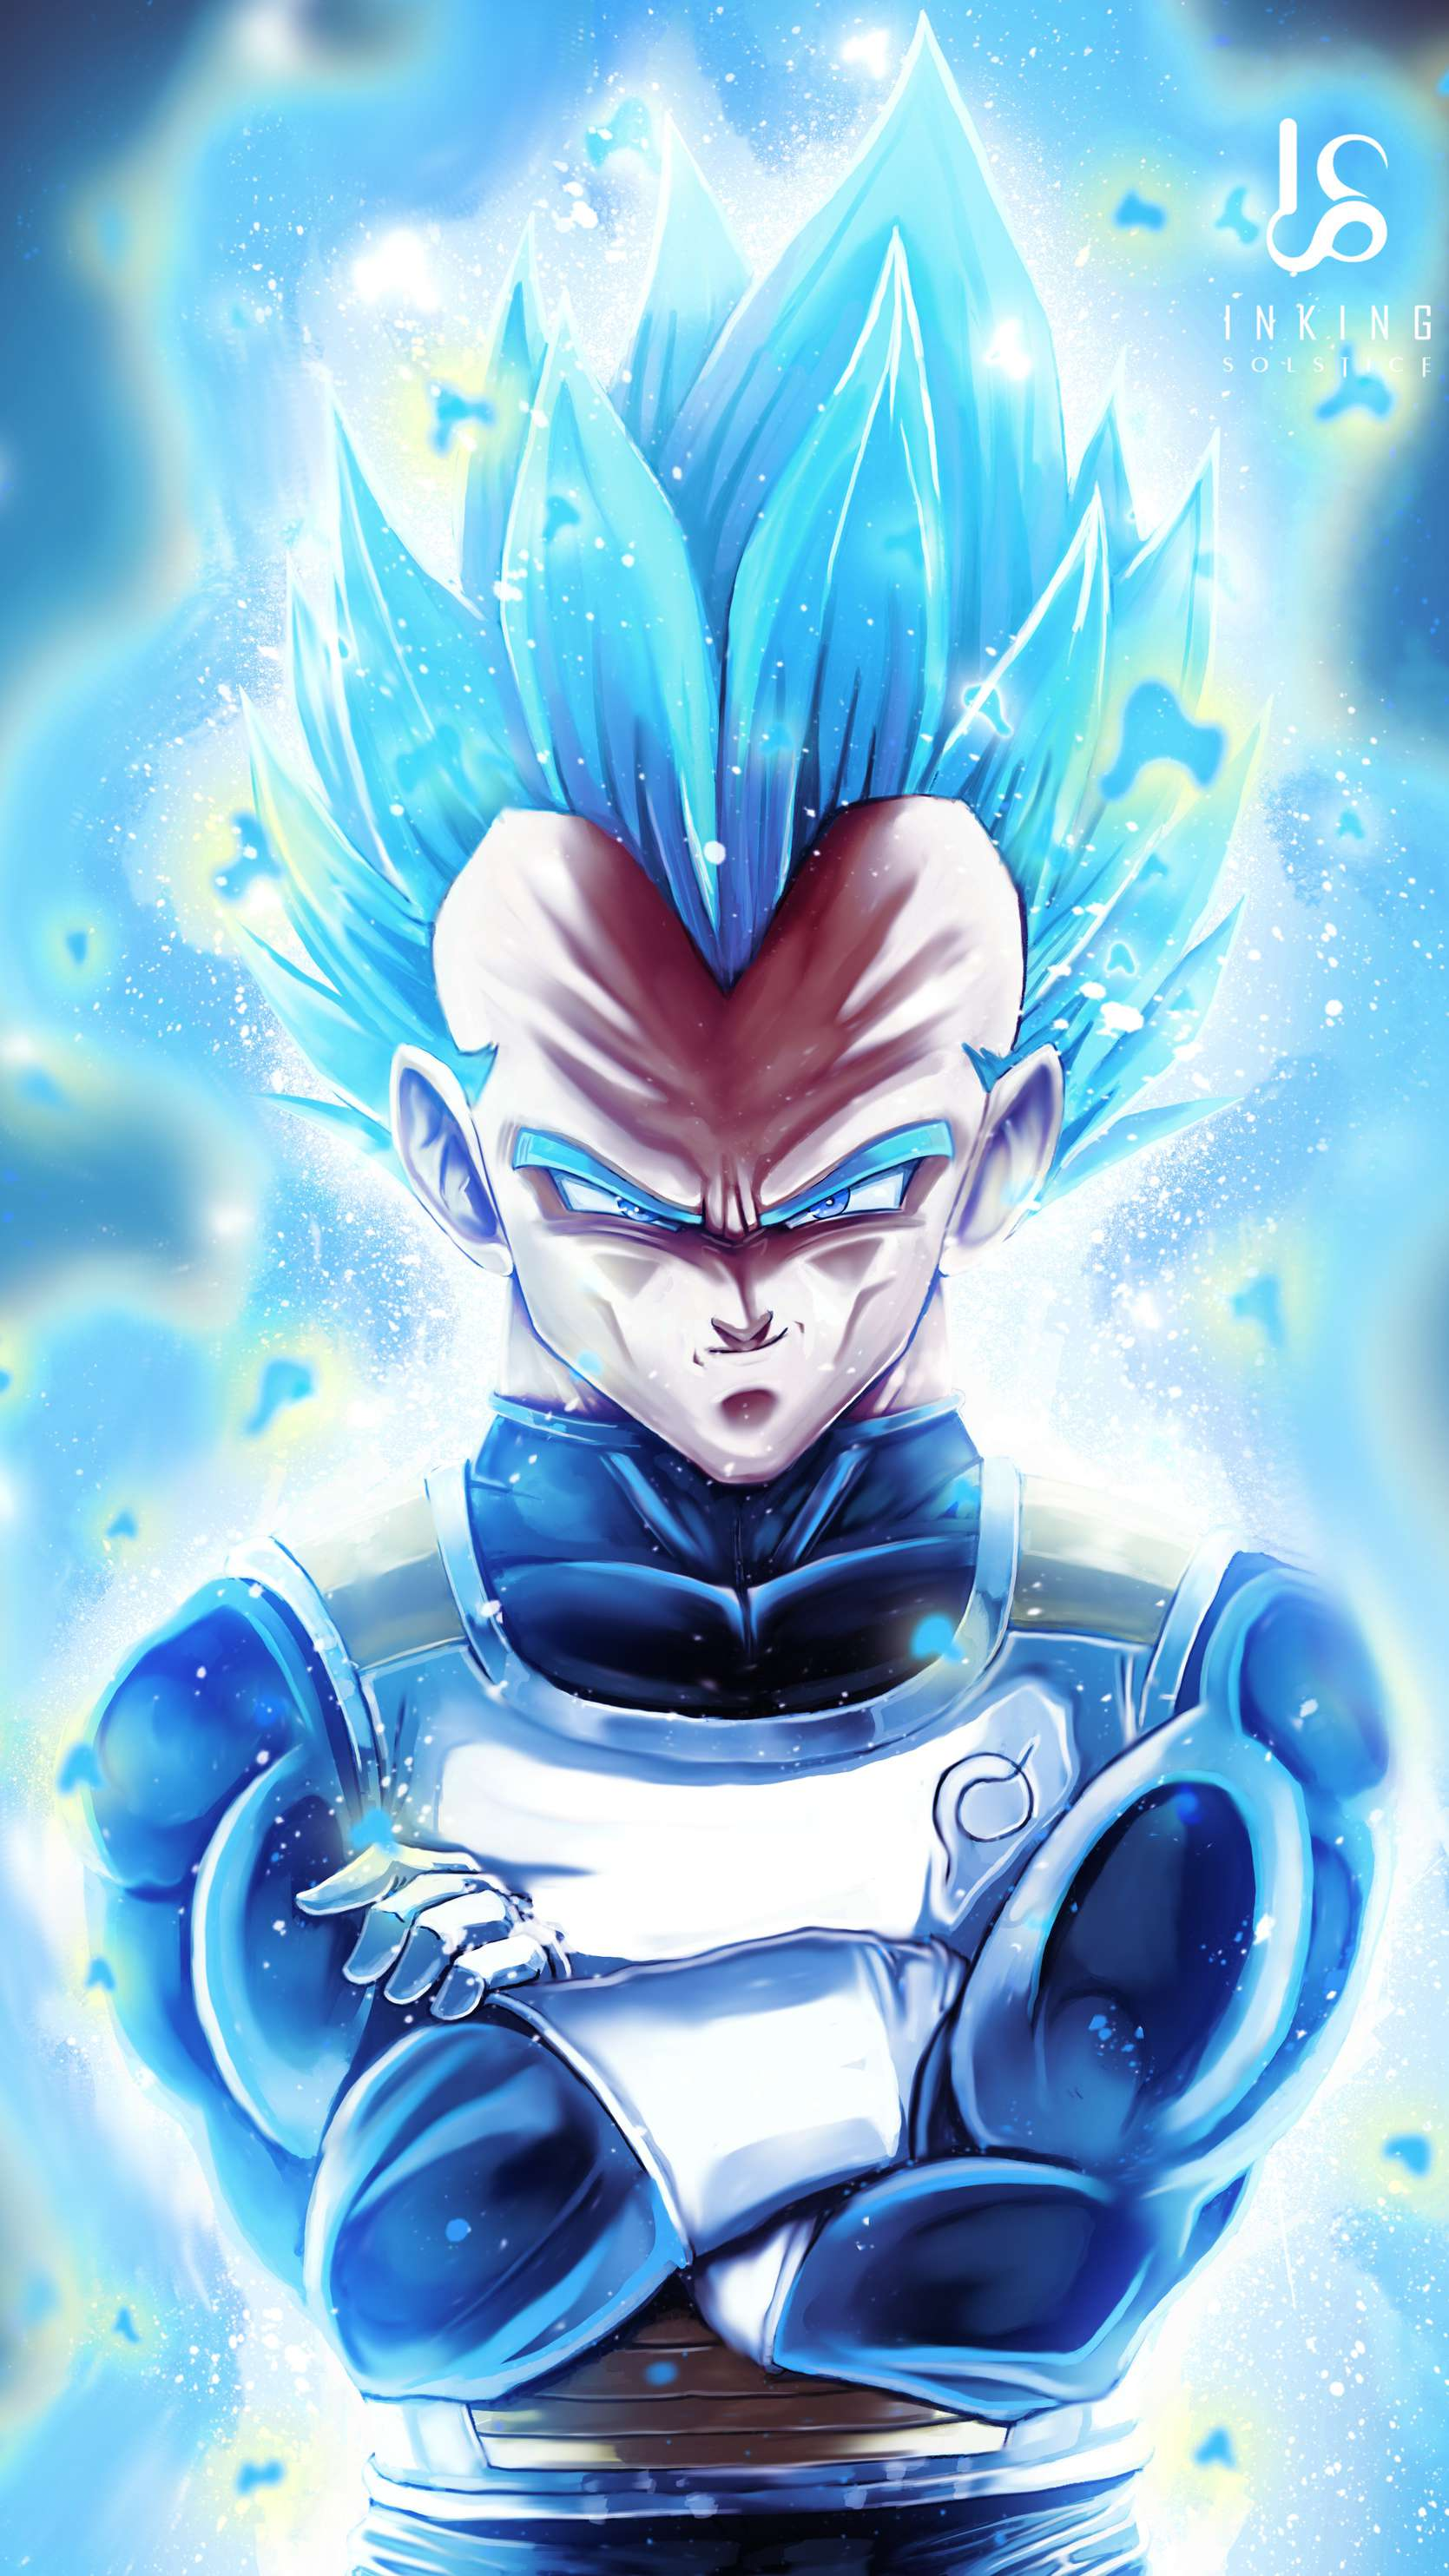 Dragon Ball Z Wallpaper Iphone 5c 50091 Hd Wallpaper Backgrounds Download